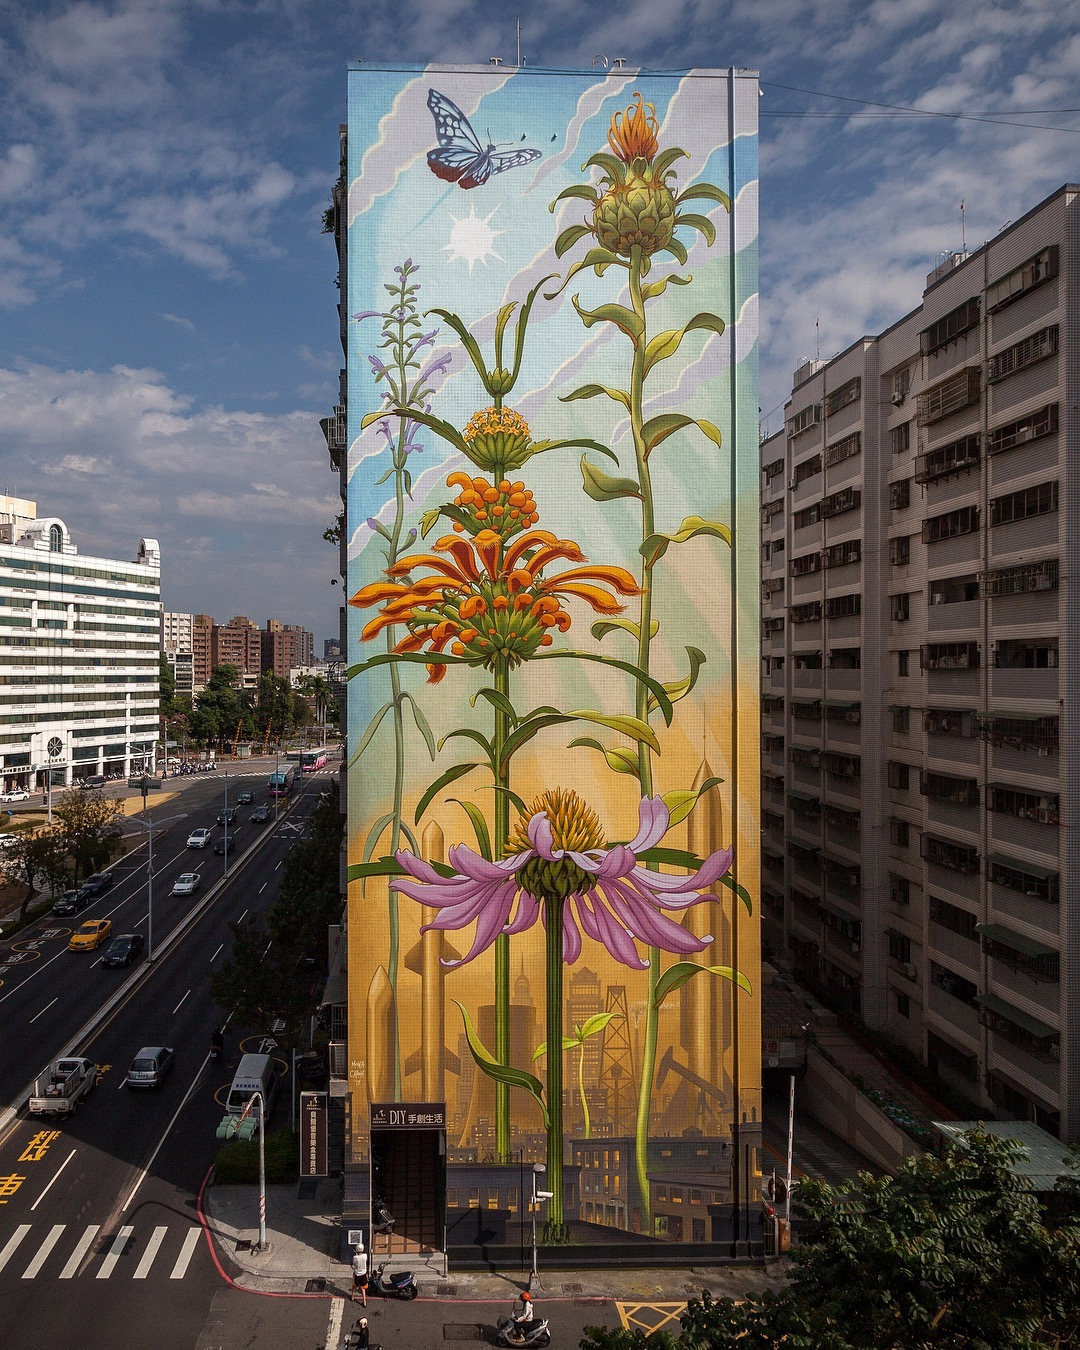 Soaring Murals of Plants on Urban Walls by Mona Caron (9 pics)